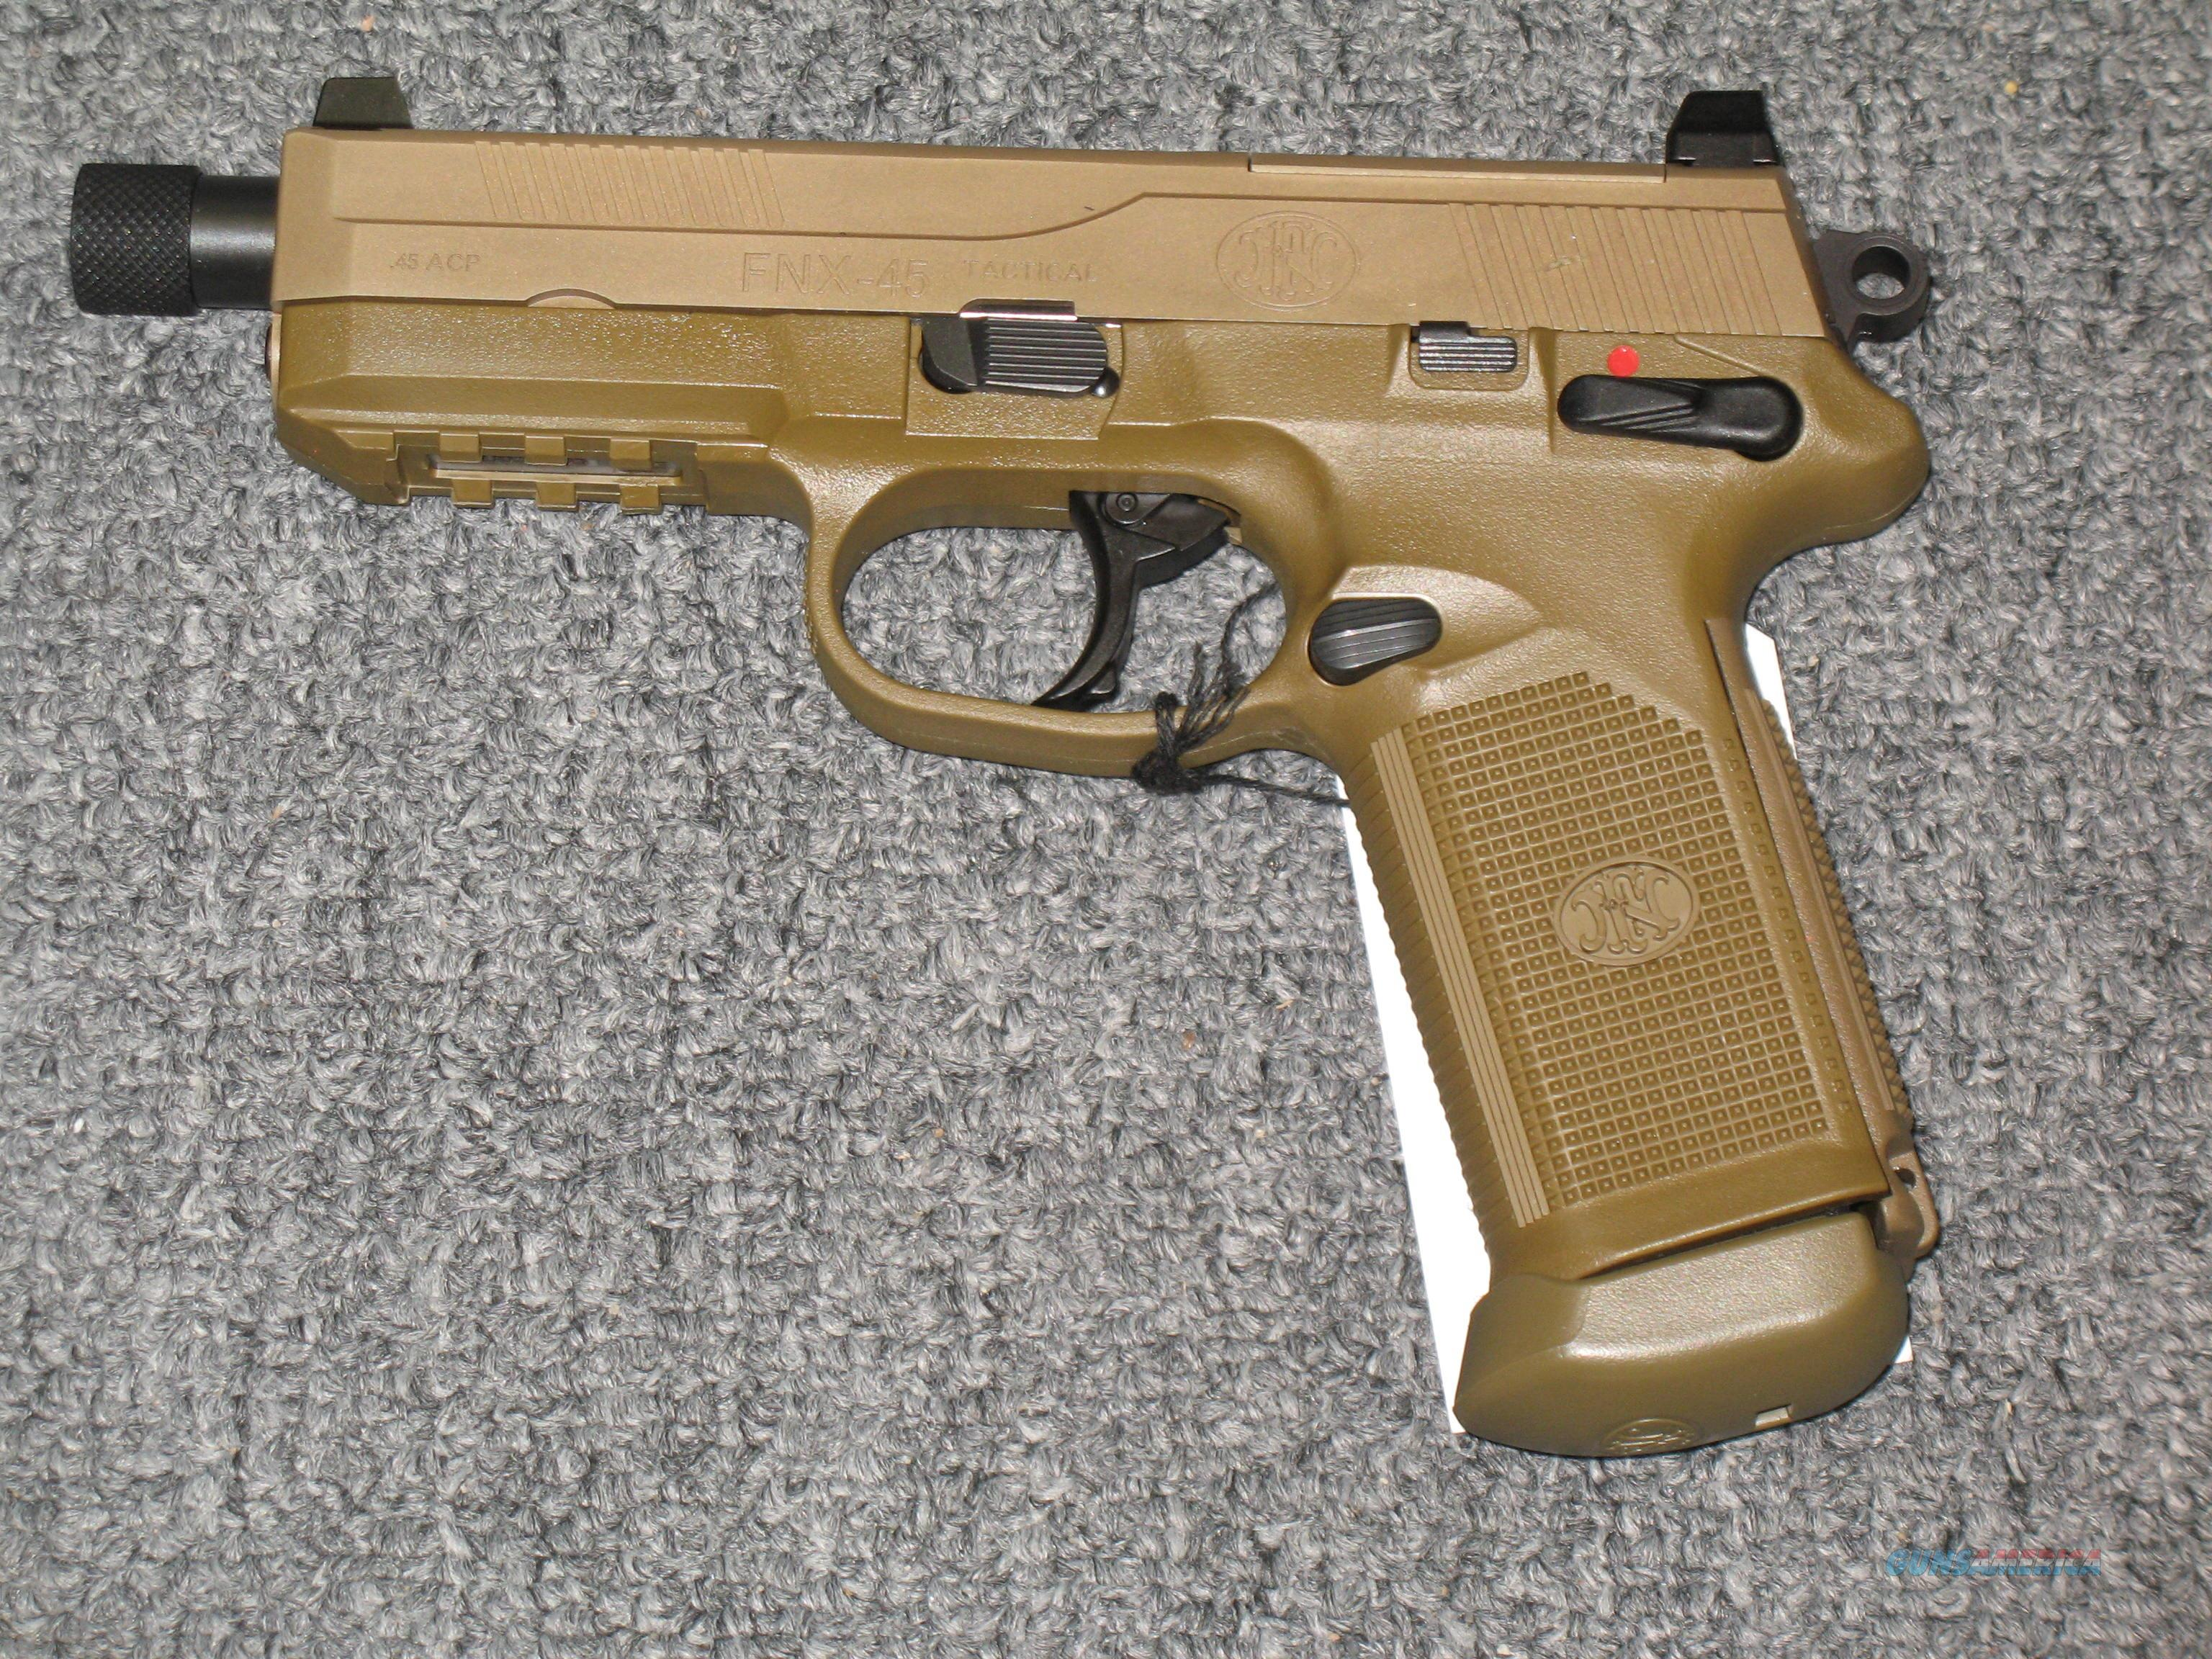 FNX-45 Tactical w/overall FDE finish, raised night sights  Guns > Pistols > FNH - Fabrique Nationale (FN) Pistols > FNP